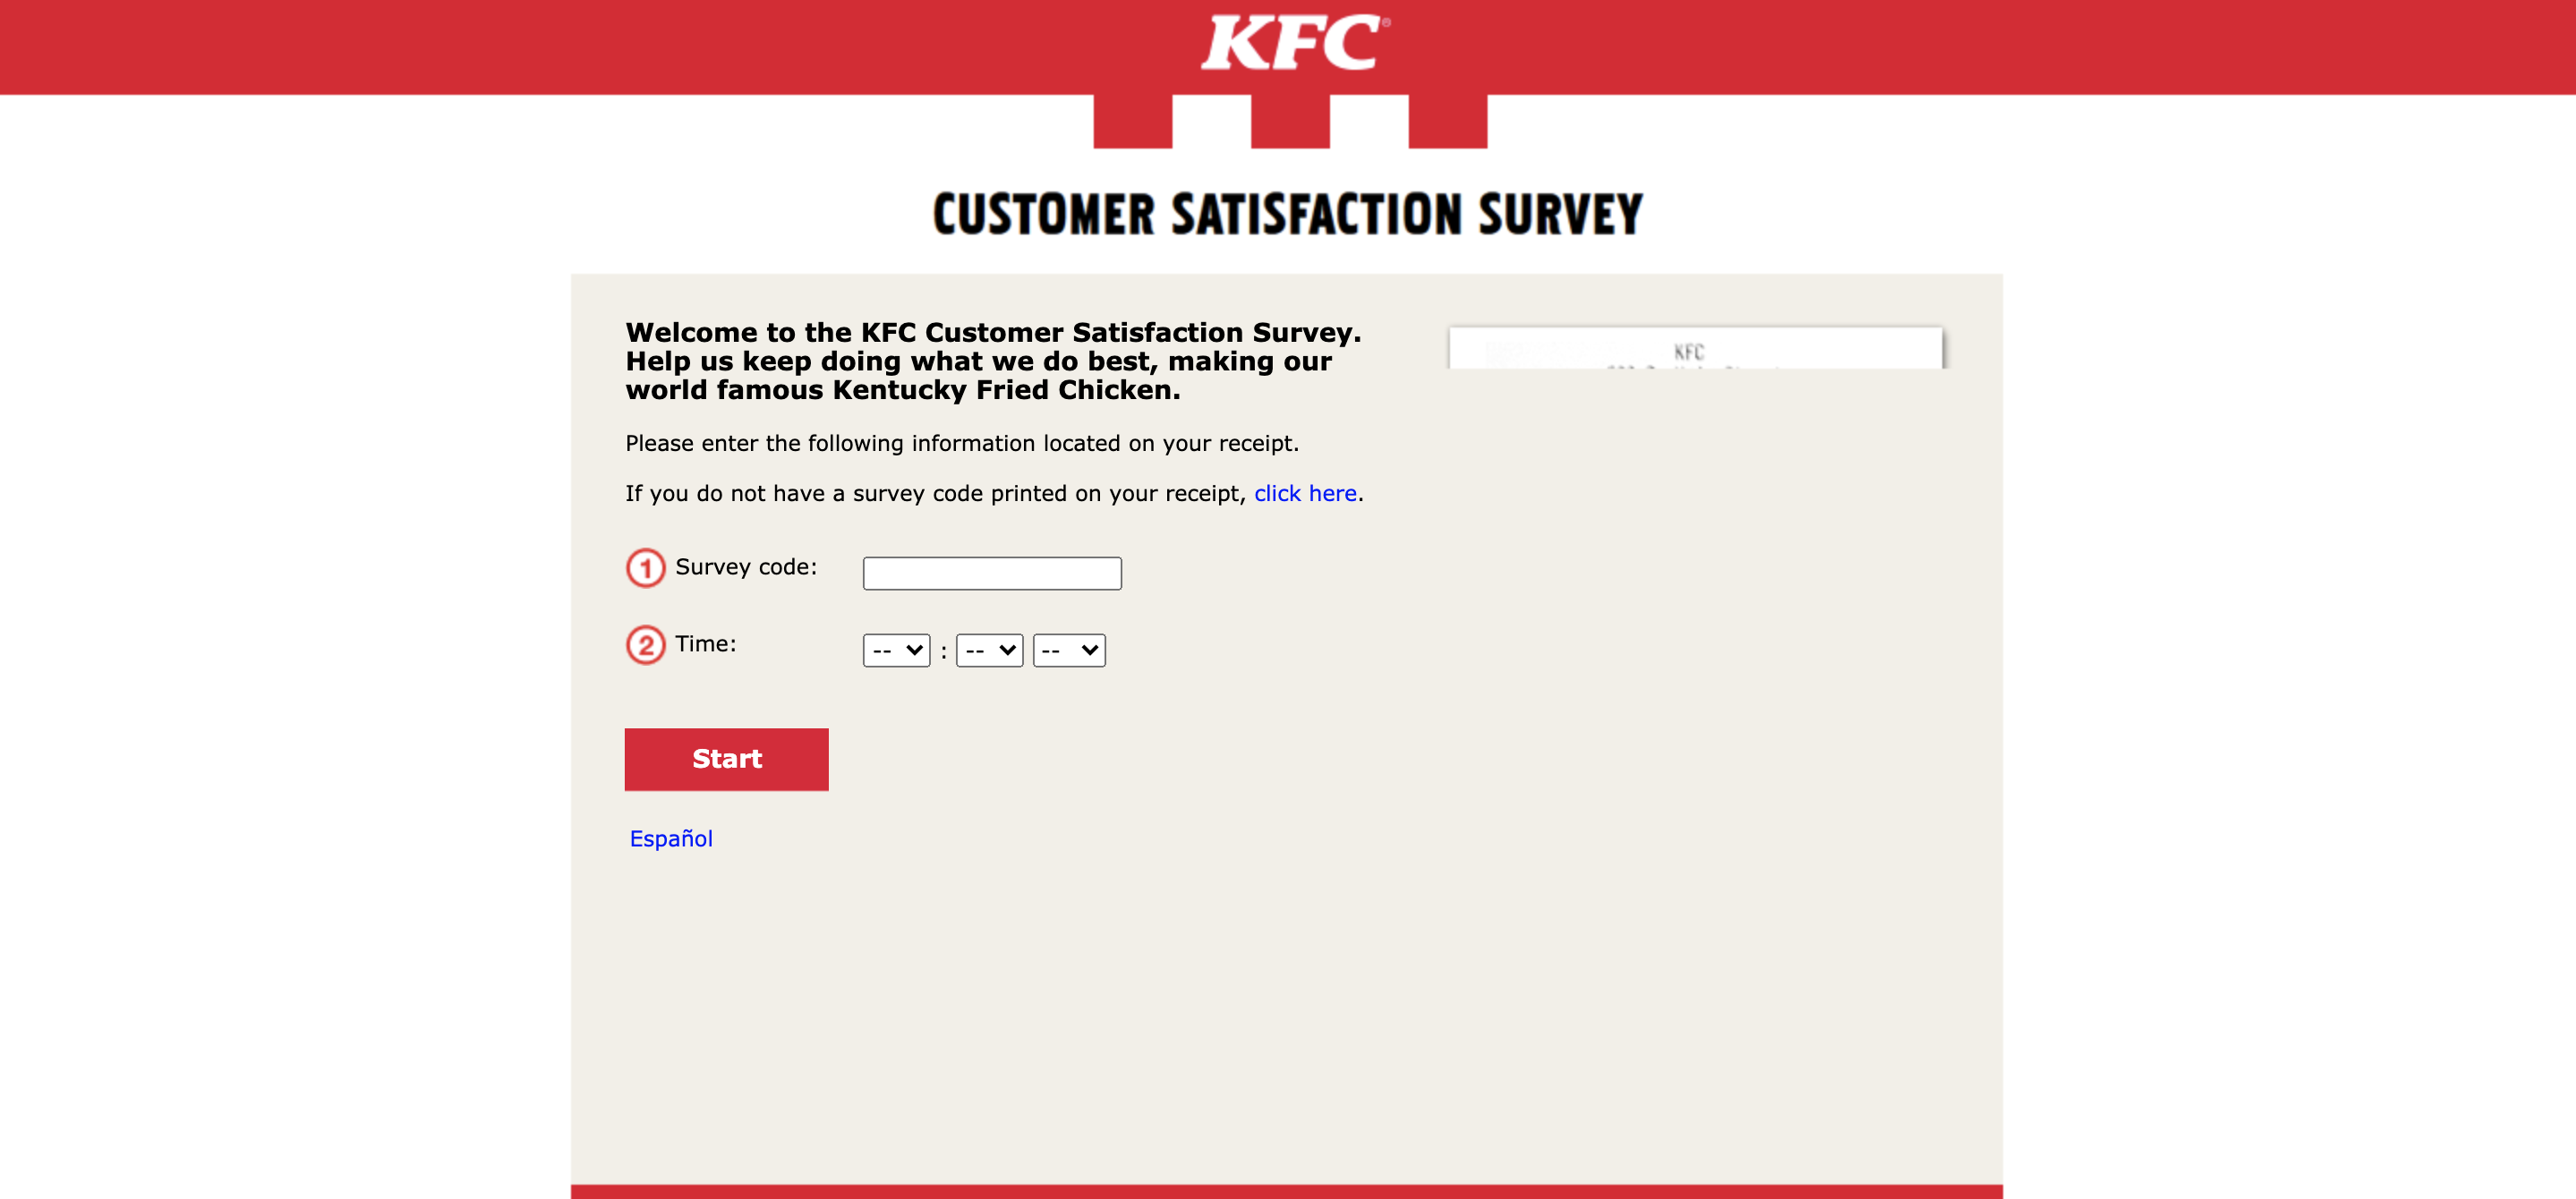 MyKFCExperience Survey at www.mykfcexperience.com Official